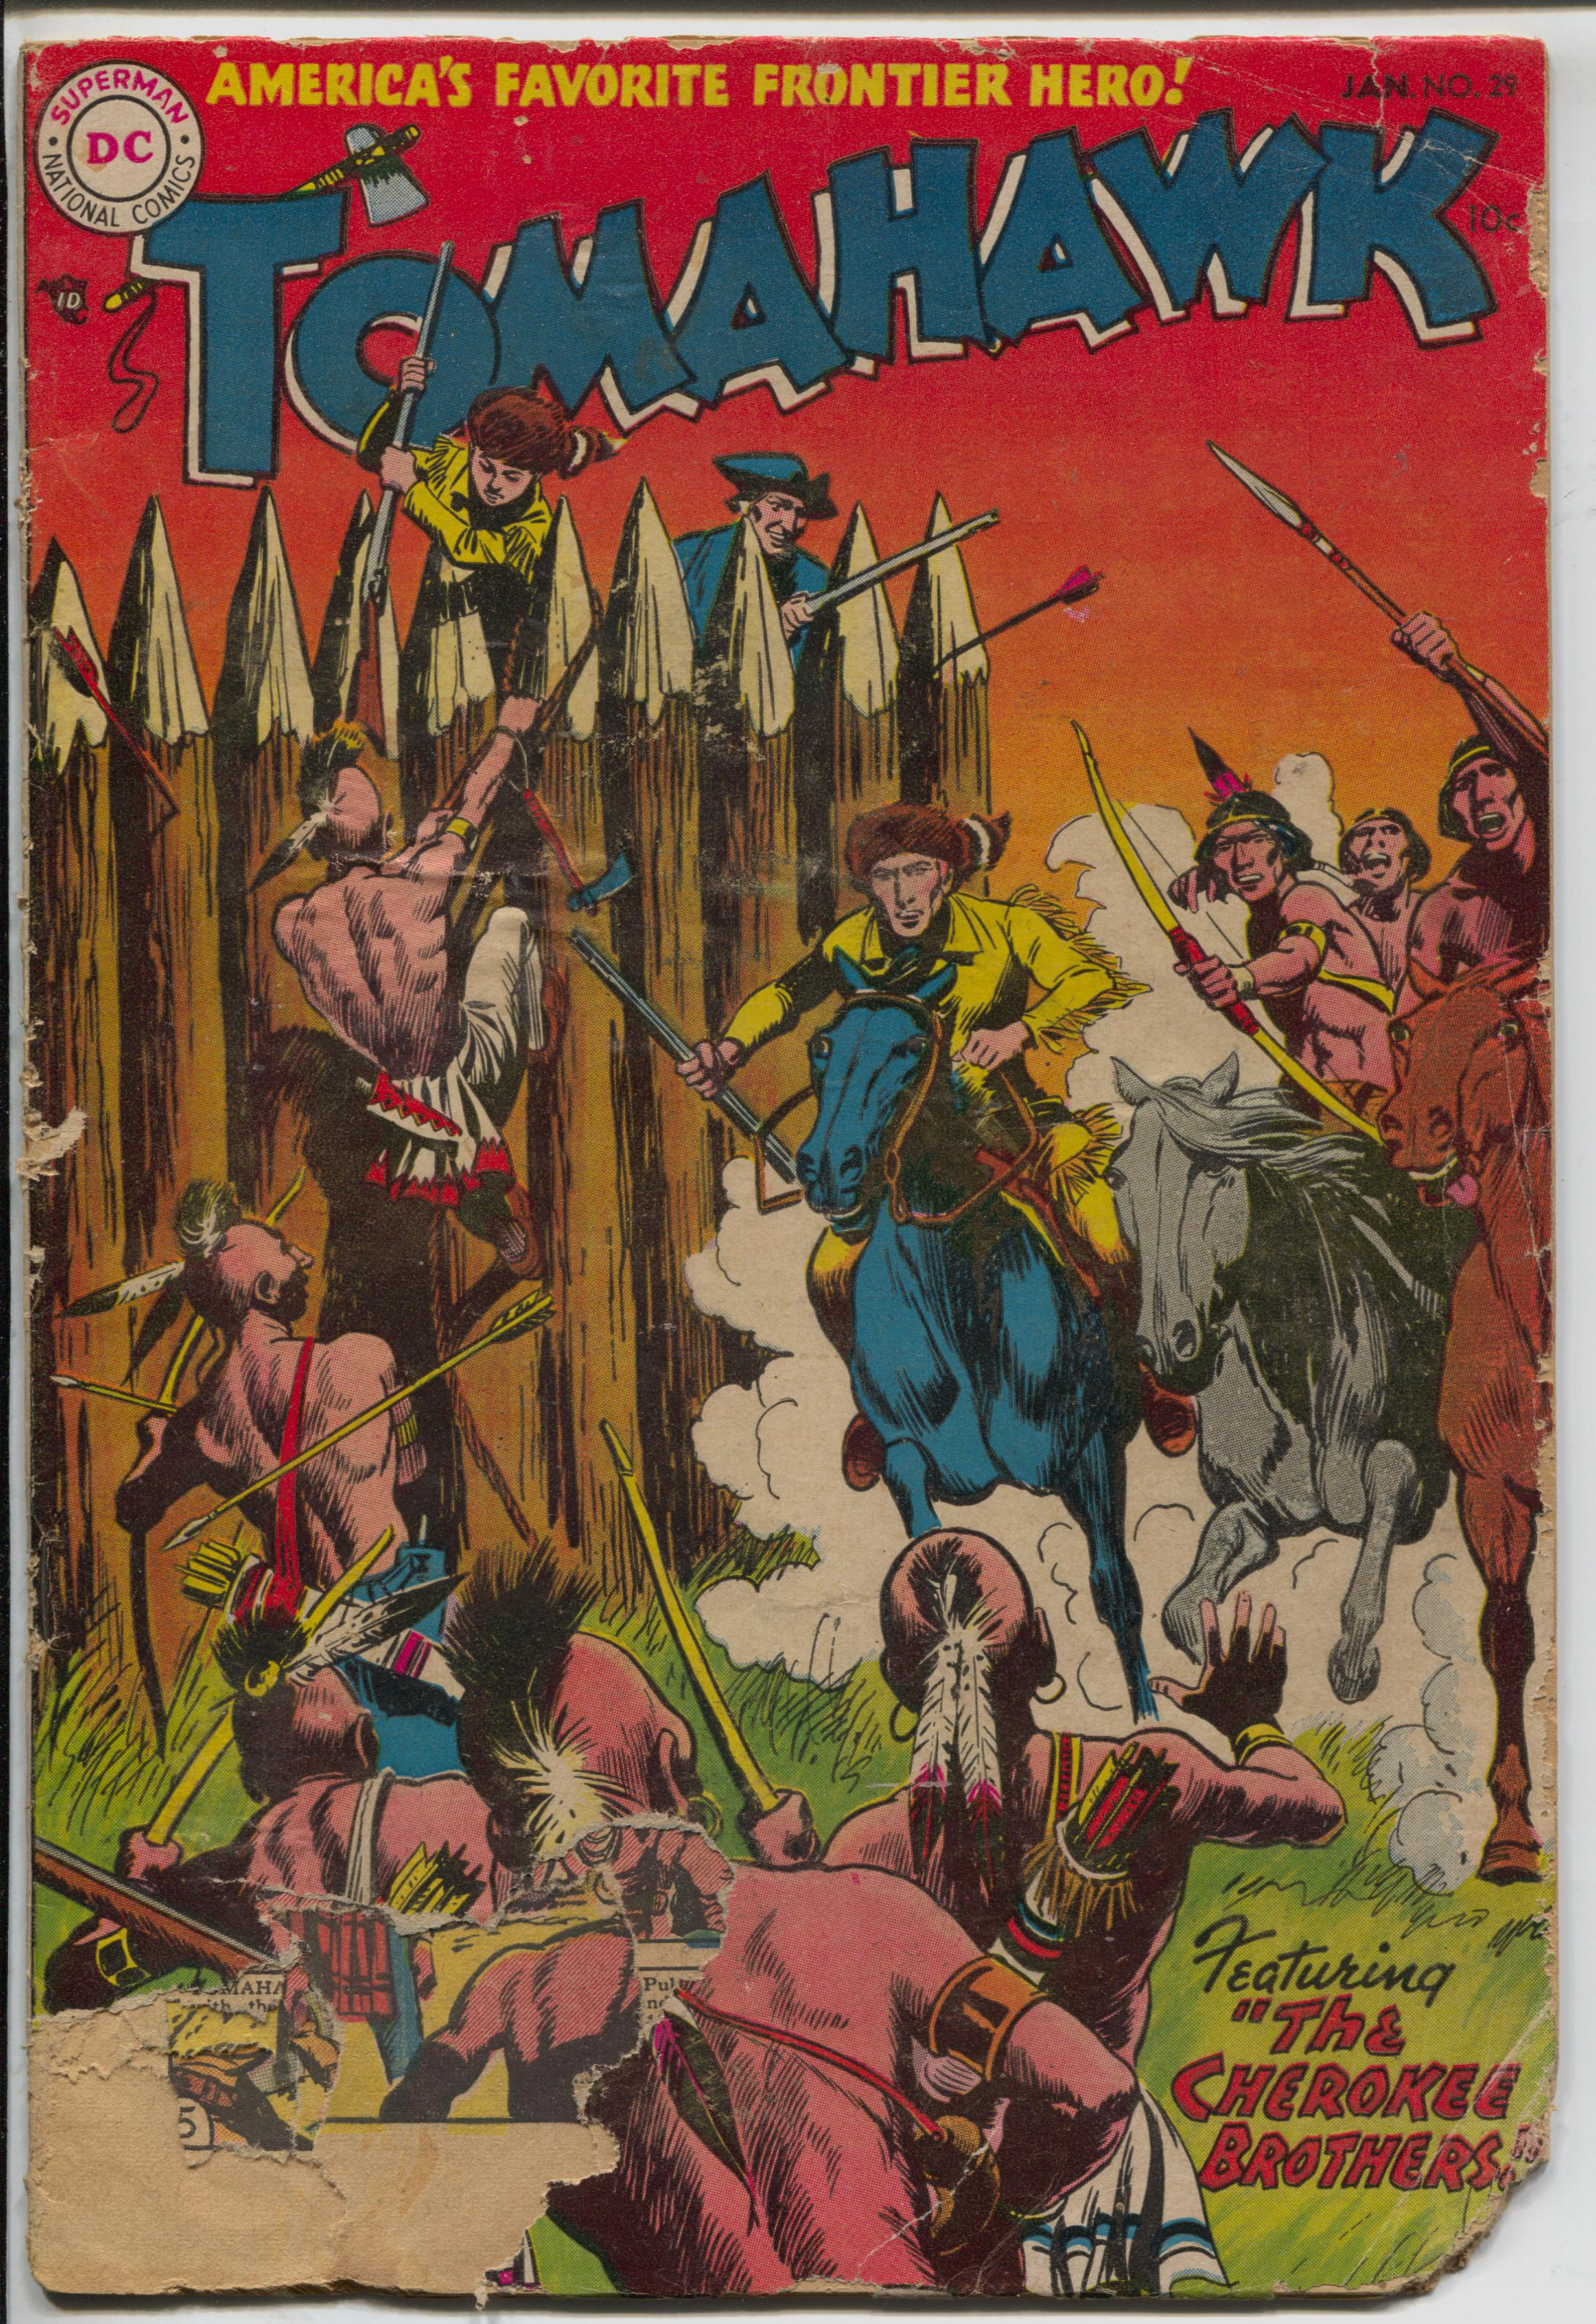 Tomahawk #29 1955-DC-Red Coats-Indian fight cover-Frank Frazetta art-FR/G Fair -Indian fight cover -Fight the Red Coats -Frank Frazetta art Condition: FR/G